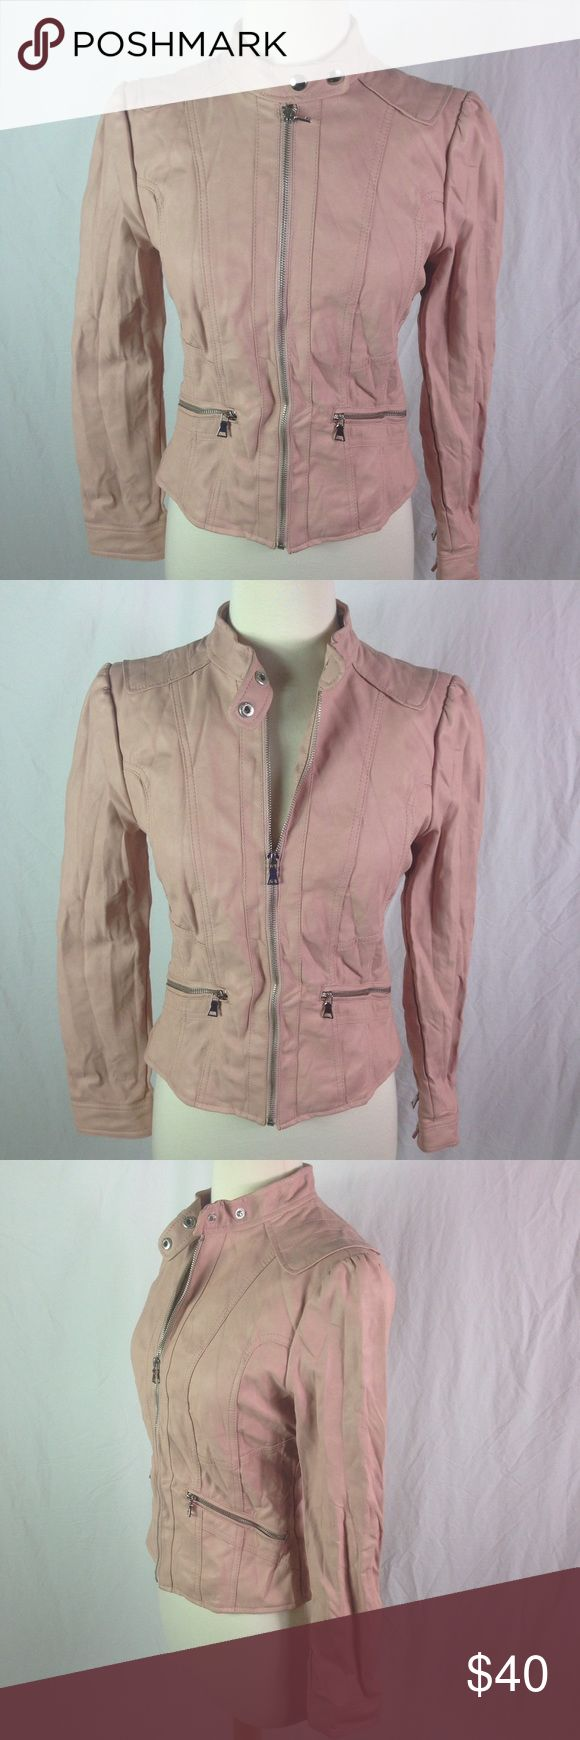 Forever XI Black River Blush Pink Moro Jacket Forever XI Black River Blush Pink Moro Jacket made from faux leather. Perfect layering piece for the fall. Great neutral color will mix and match with everything. Please ask questions before you buy, thanks! black rivet Jackets & Coats Jean Jackets